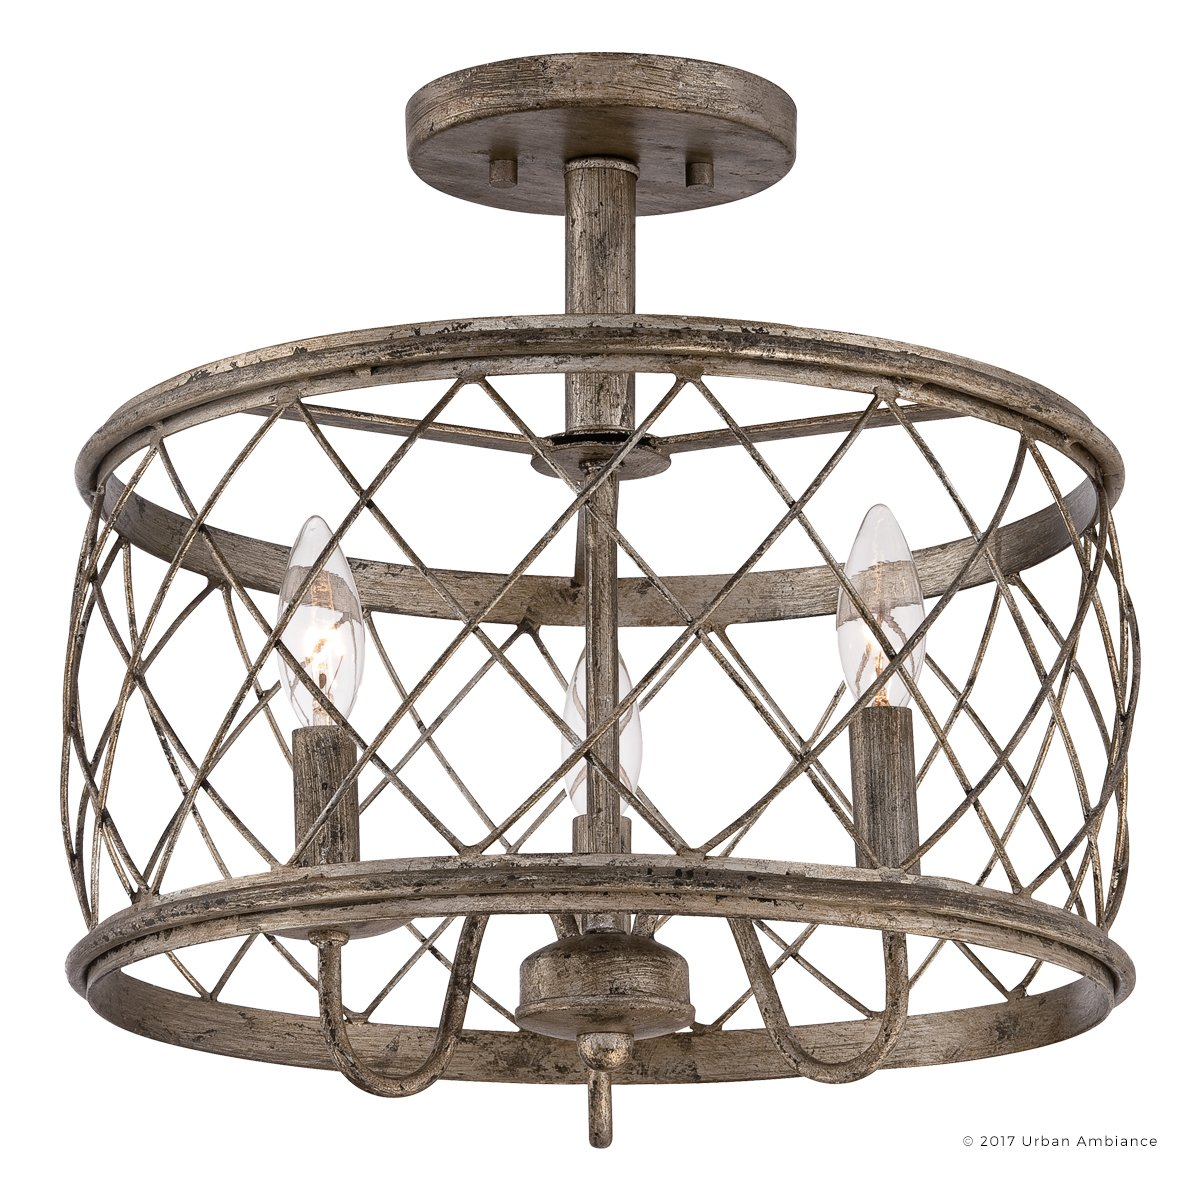 Luxury French Country Semi-Flush Ceiling Light, Medium Size: 14.5''H x 15''W, with Shabby Chic Style Elements, Gold Accented Silver Leaf Finish and Open Metal Lattice Shade, UQL2265 by Urban Ambiance